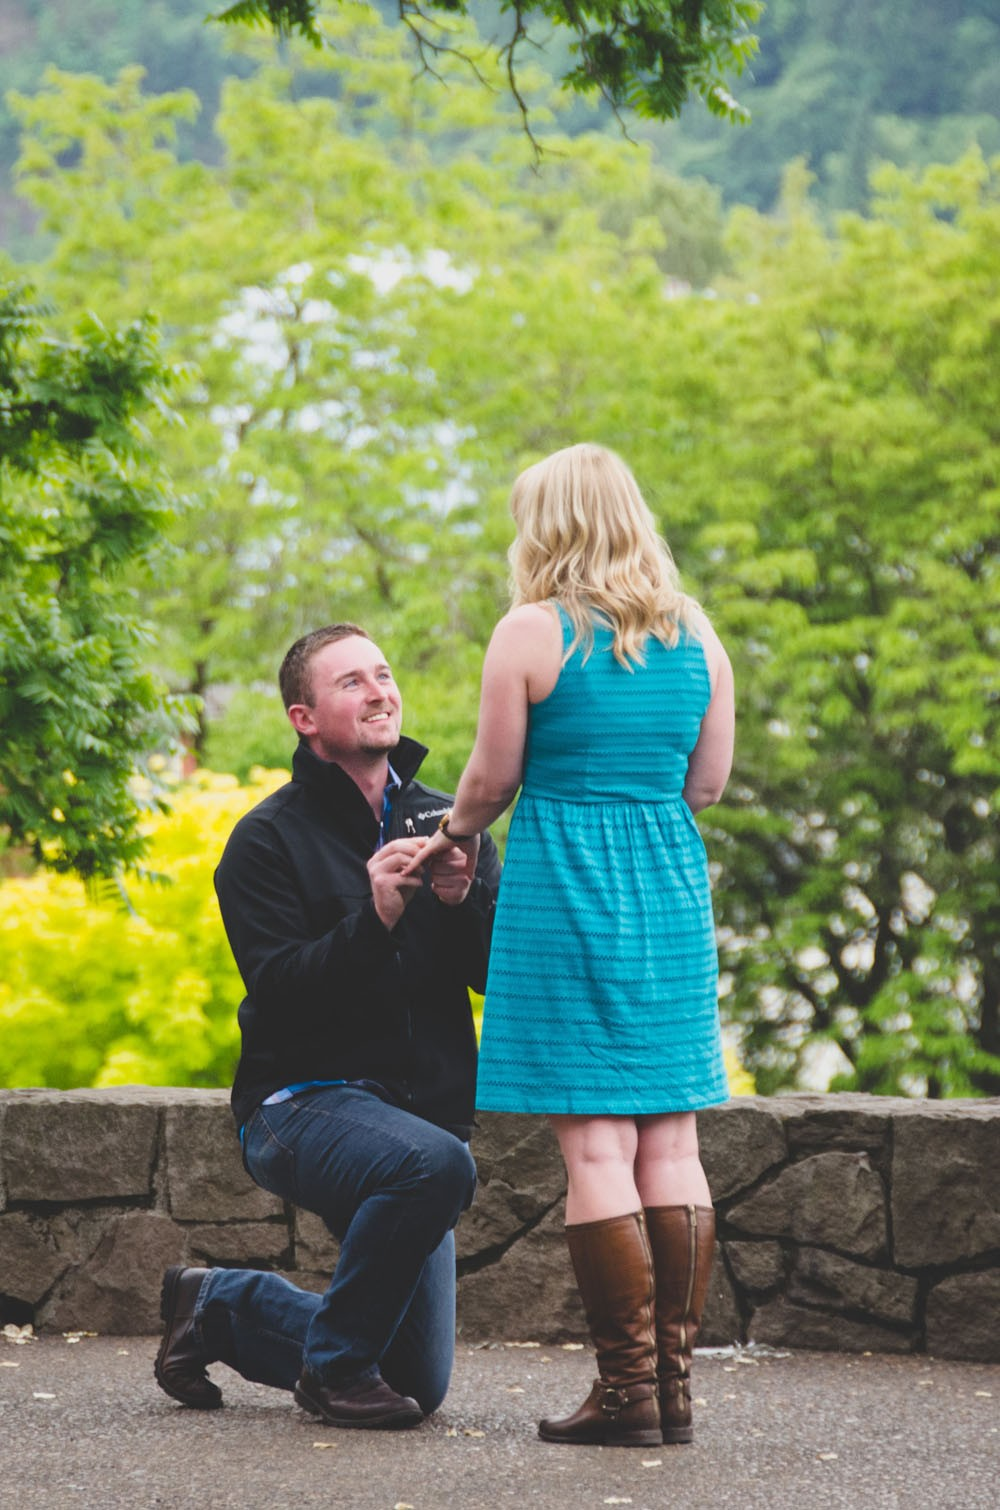 Rachael&Brandon Proposal Cat Dossett I Take Photos-23